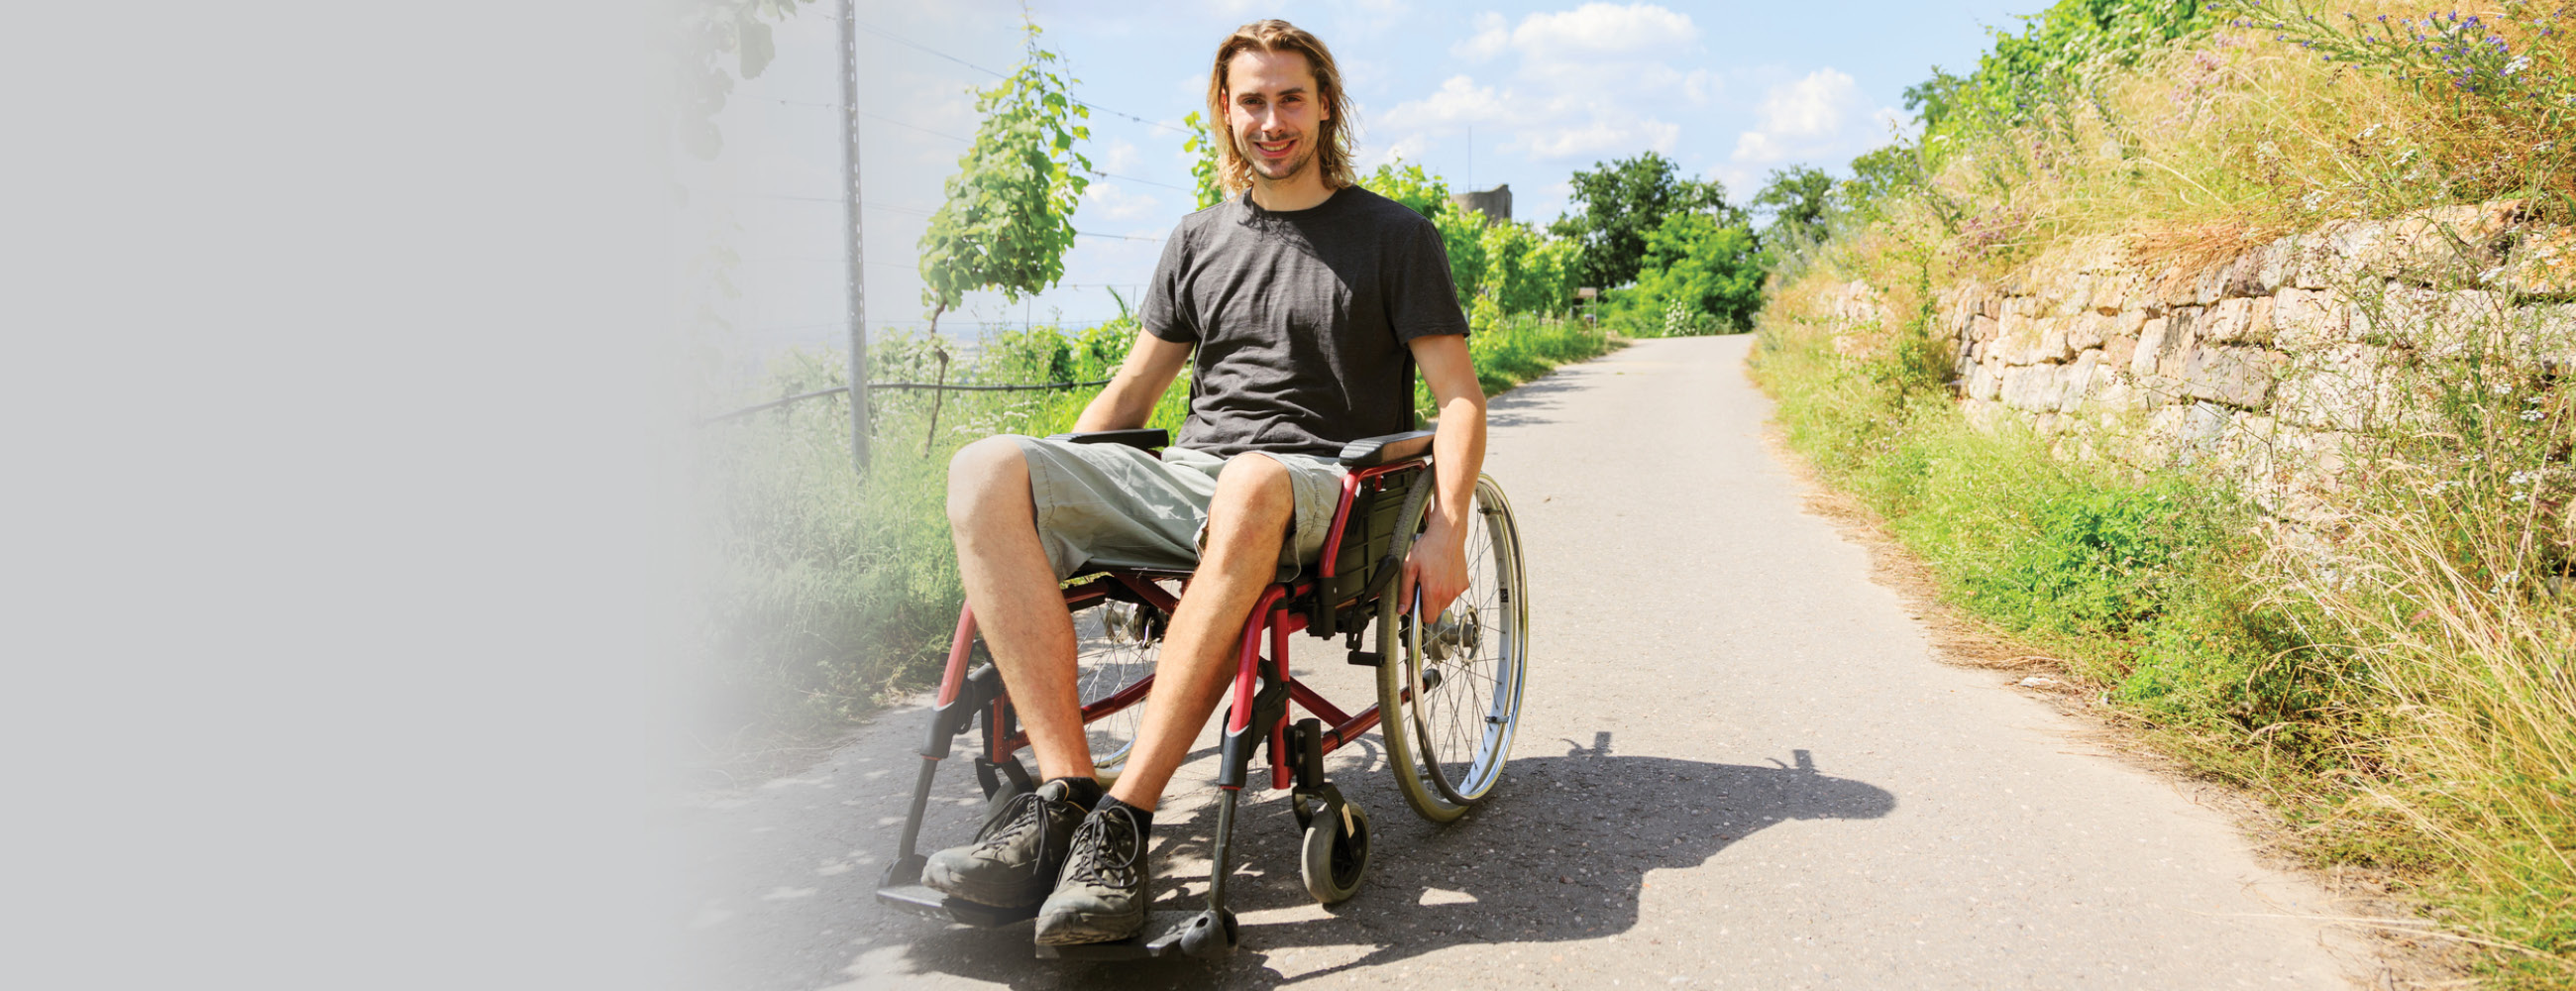 Spinal Cord Injury | Patricia Neal Rehabilitation Center